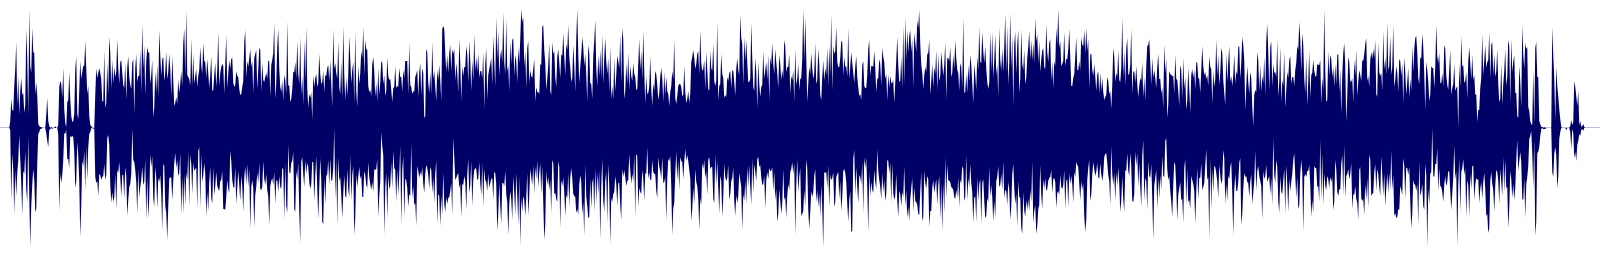 waveform of track #152082